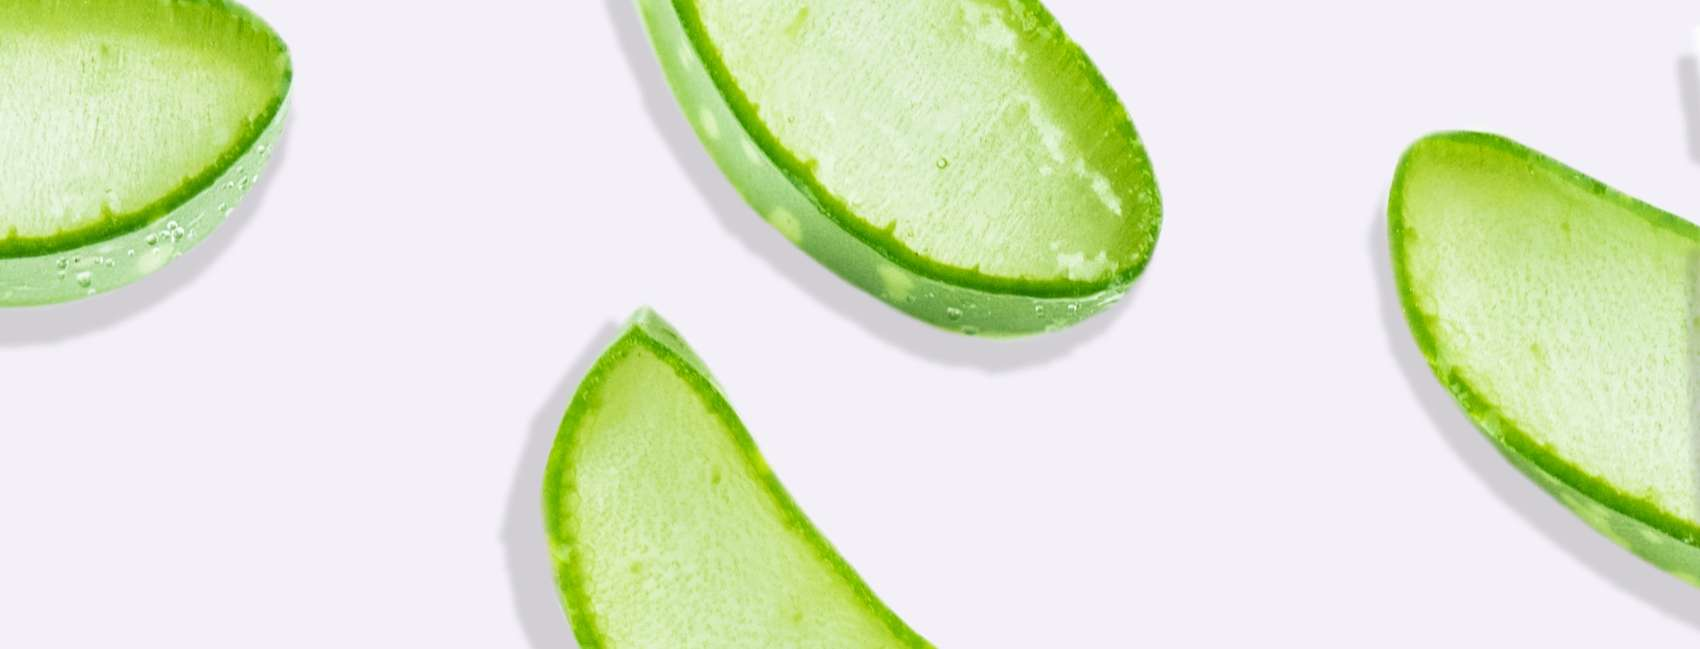 Cross section of aloe vera plant on grey background